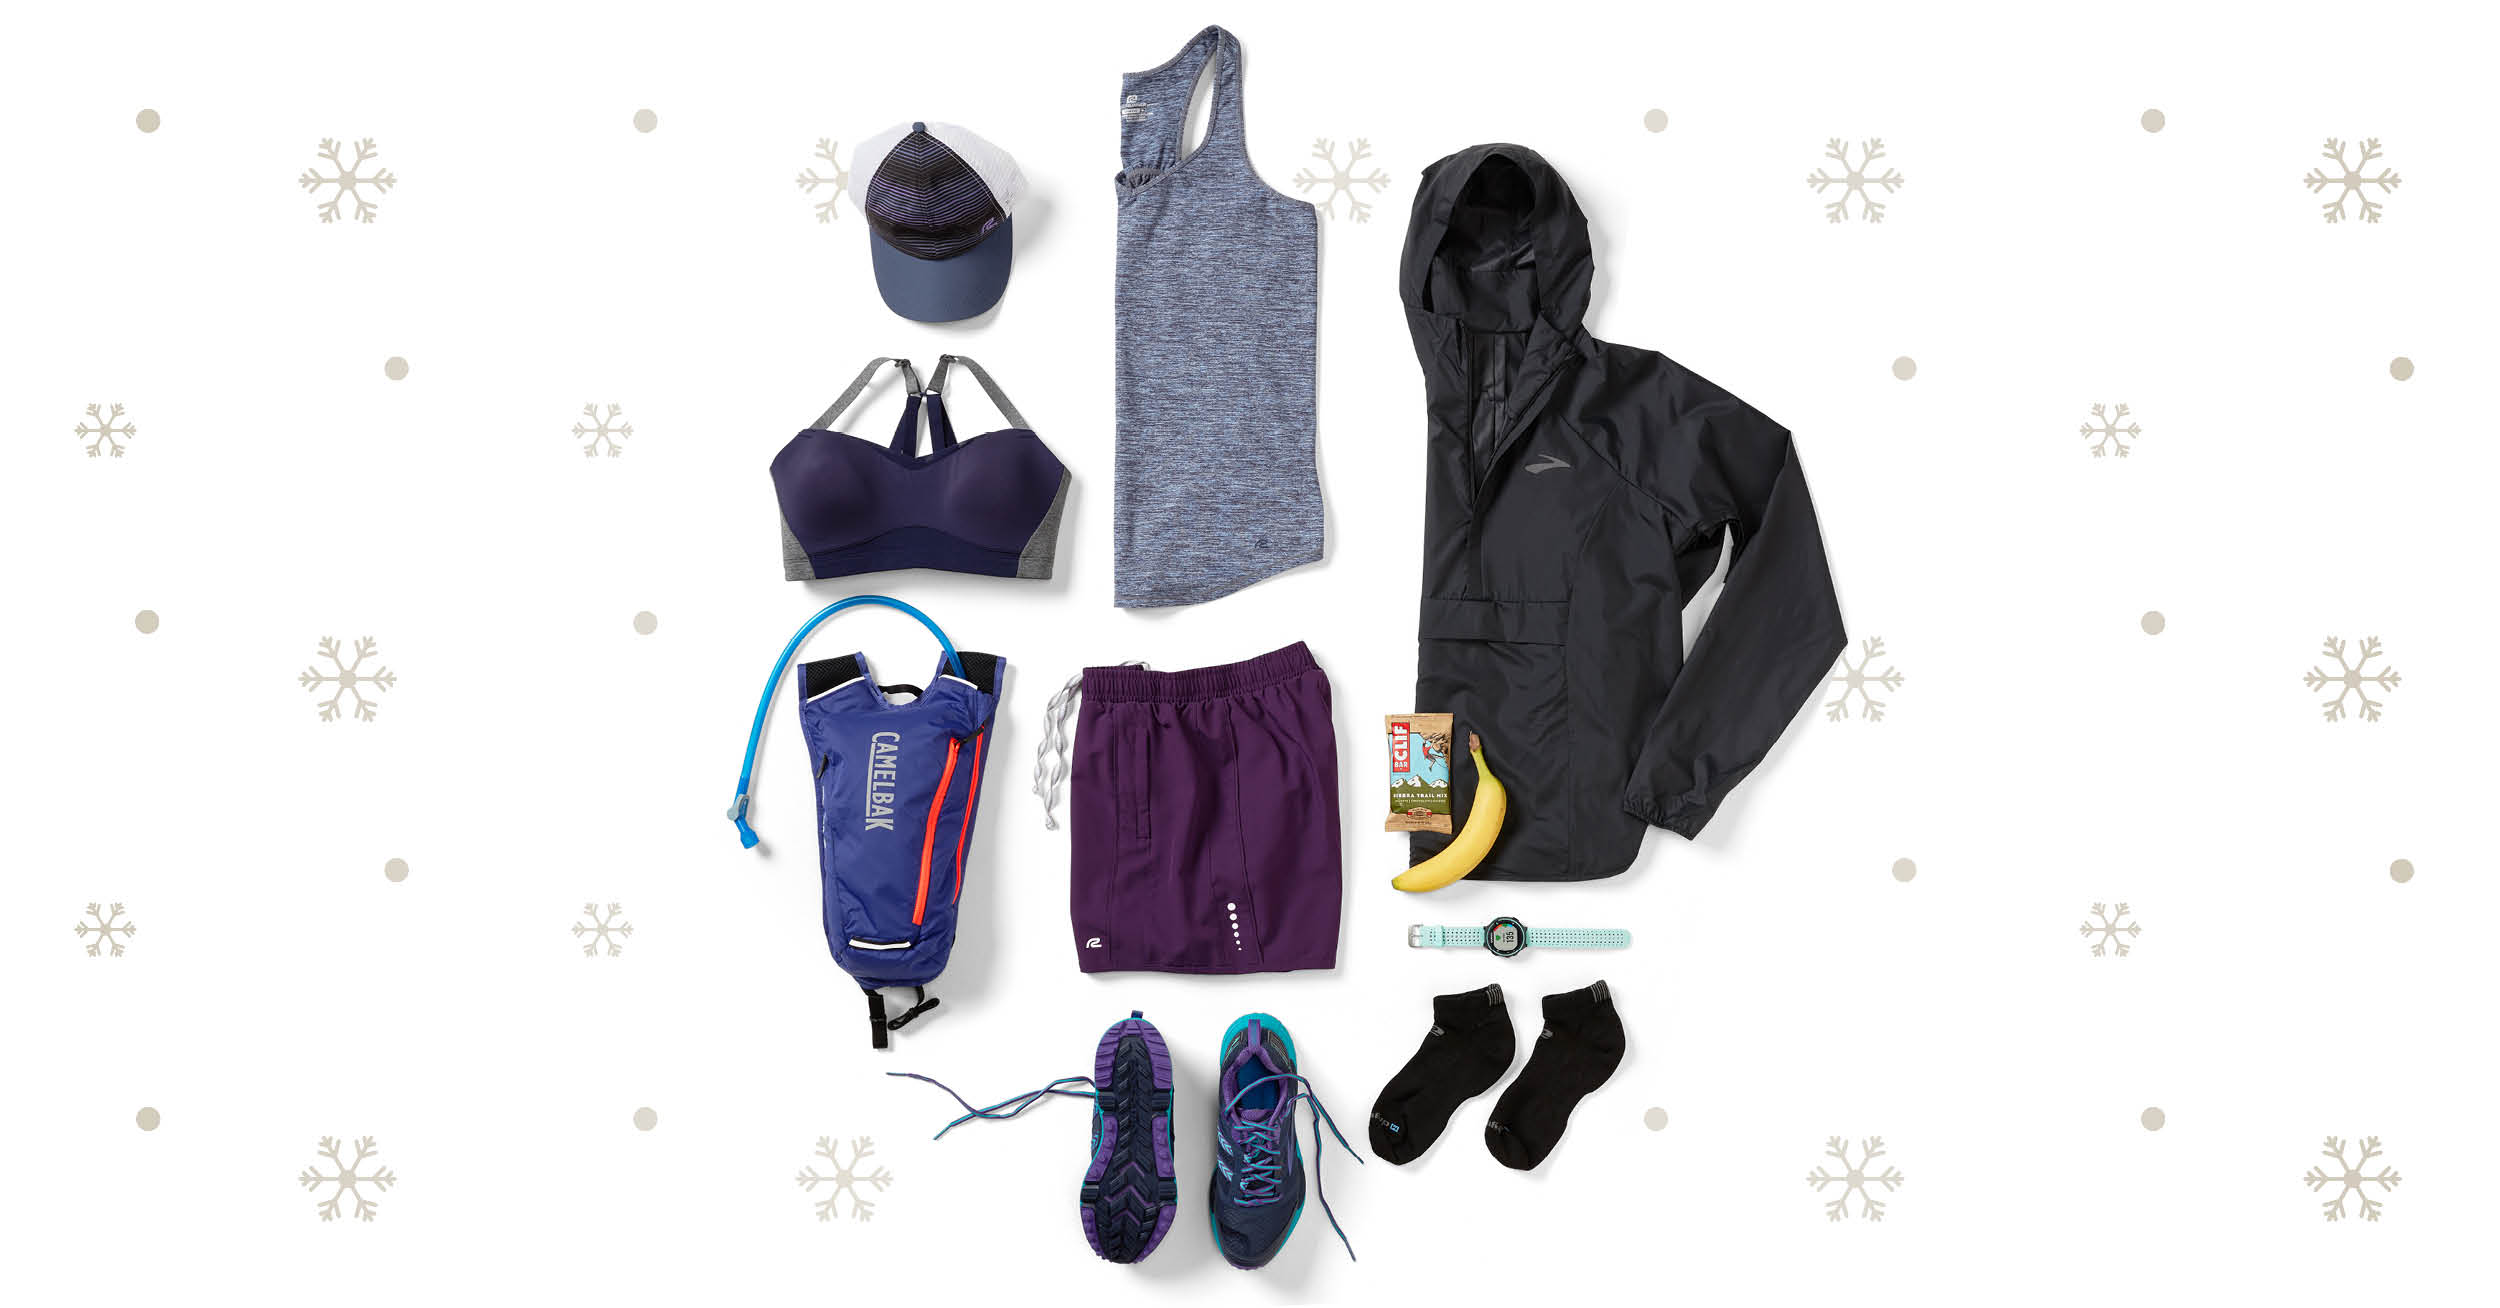 Trail Runner\'s Gift Guide: 16 Gifts The Trail Runner in Your Life ...